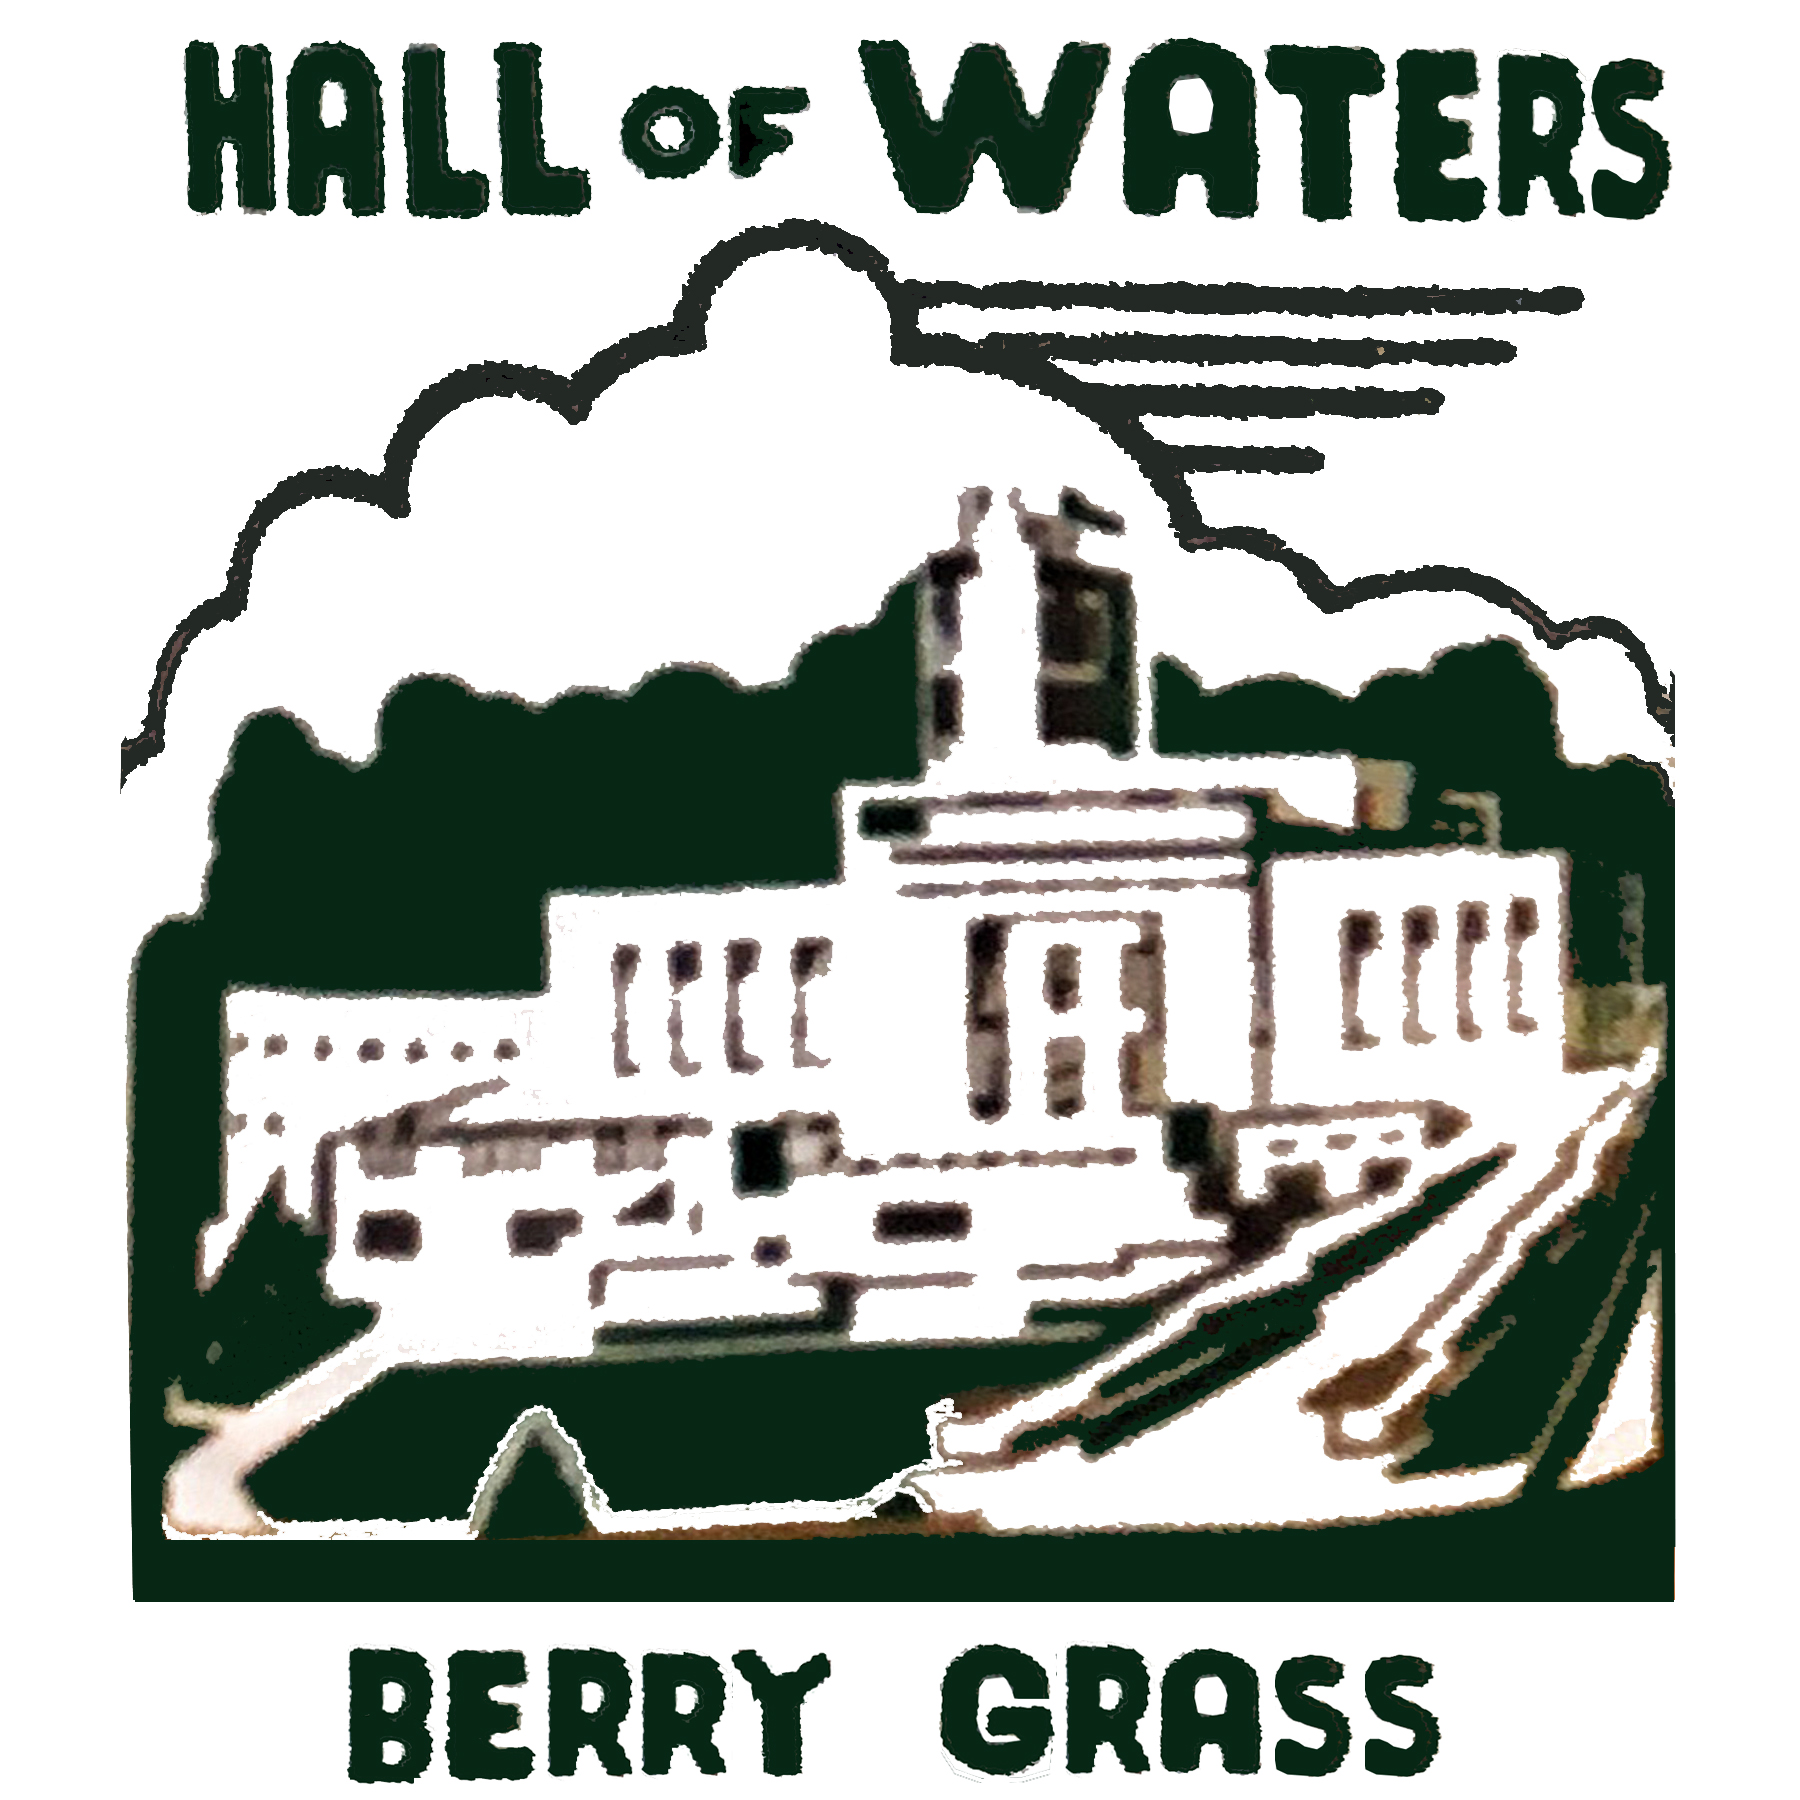 Pre-order now at The Operating System! - HALL OF WATERS is an attempt to demythologize the rural American Midwest through the specific example of the author's hometown, Excelsior Springs, MO. Through lyric essay & memoir, the book seeks to examine & undercut the inherent settler white supremacy of the Midwestern small-town, to deromanticize the nostalgia for land & place that is the hallmark of Midwestern art, & to think about what it was like growing up queer & trans in such a toxic environment.